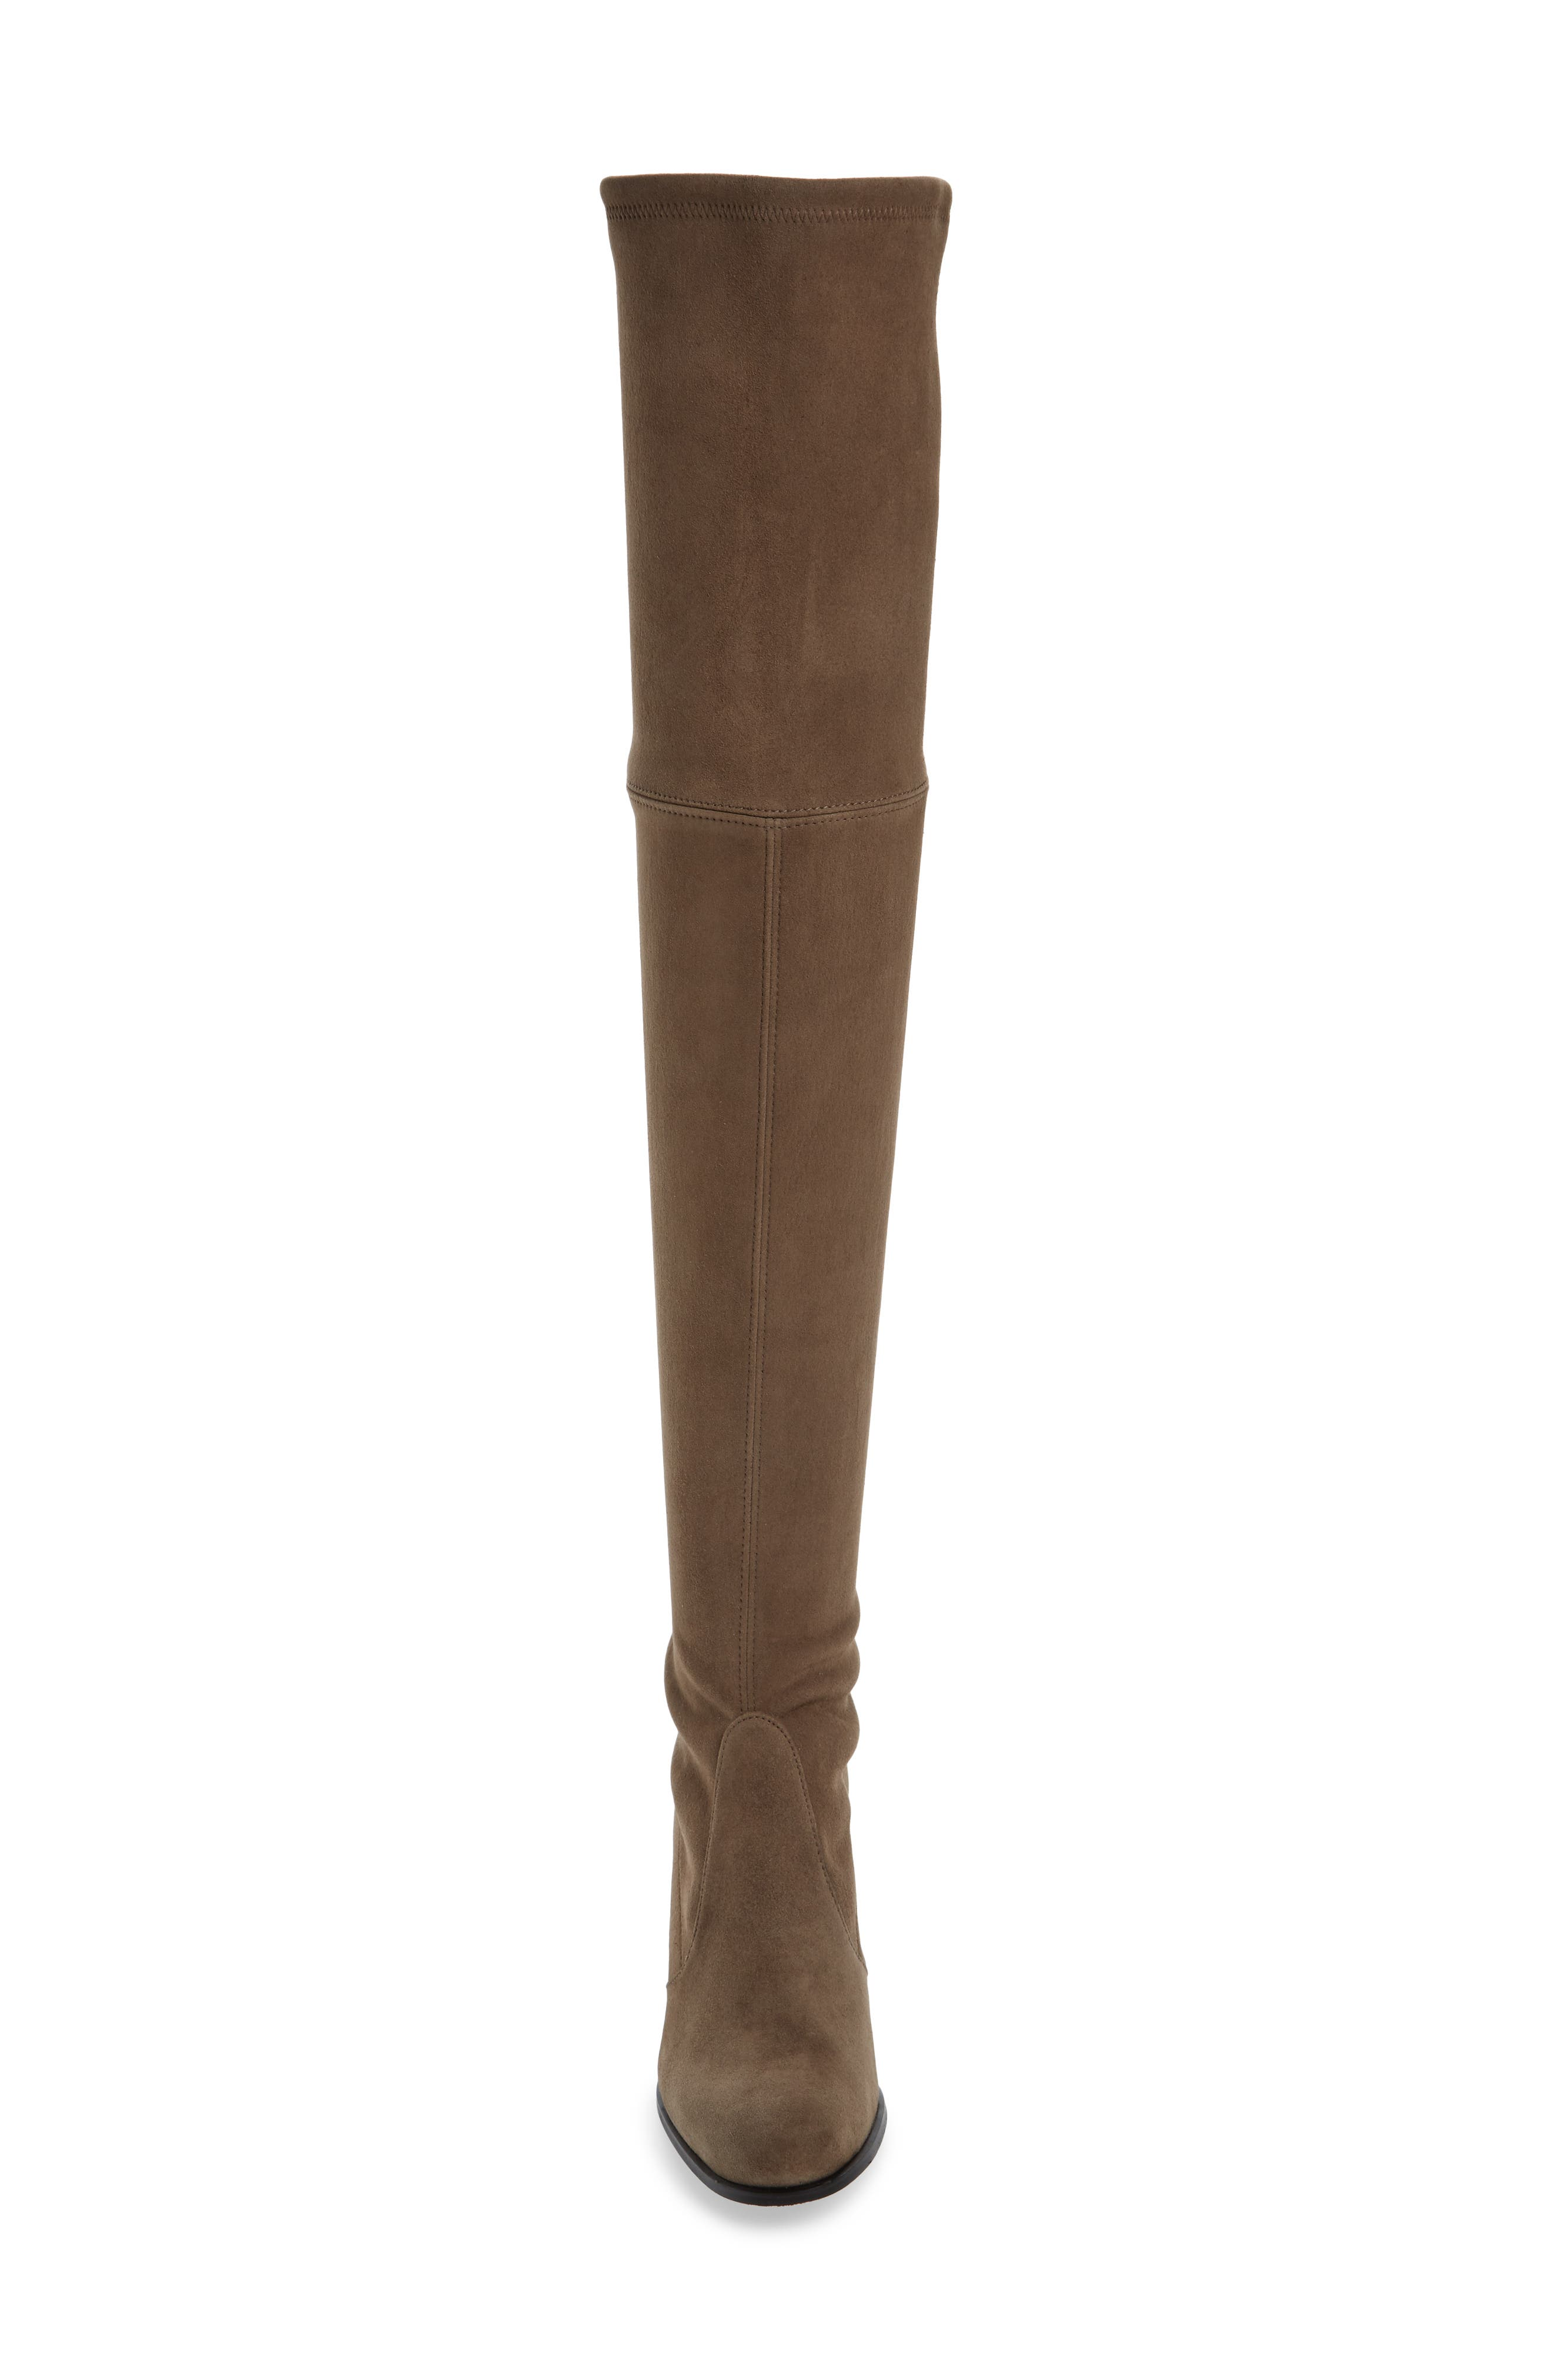 Tieland Over the Knee Boot,                             Alternate thumbnail 5, color,                             Praline Suede